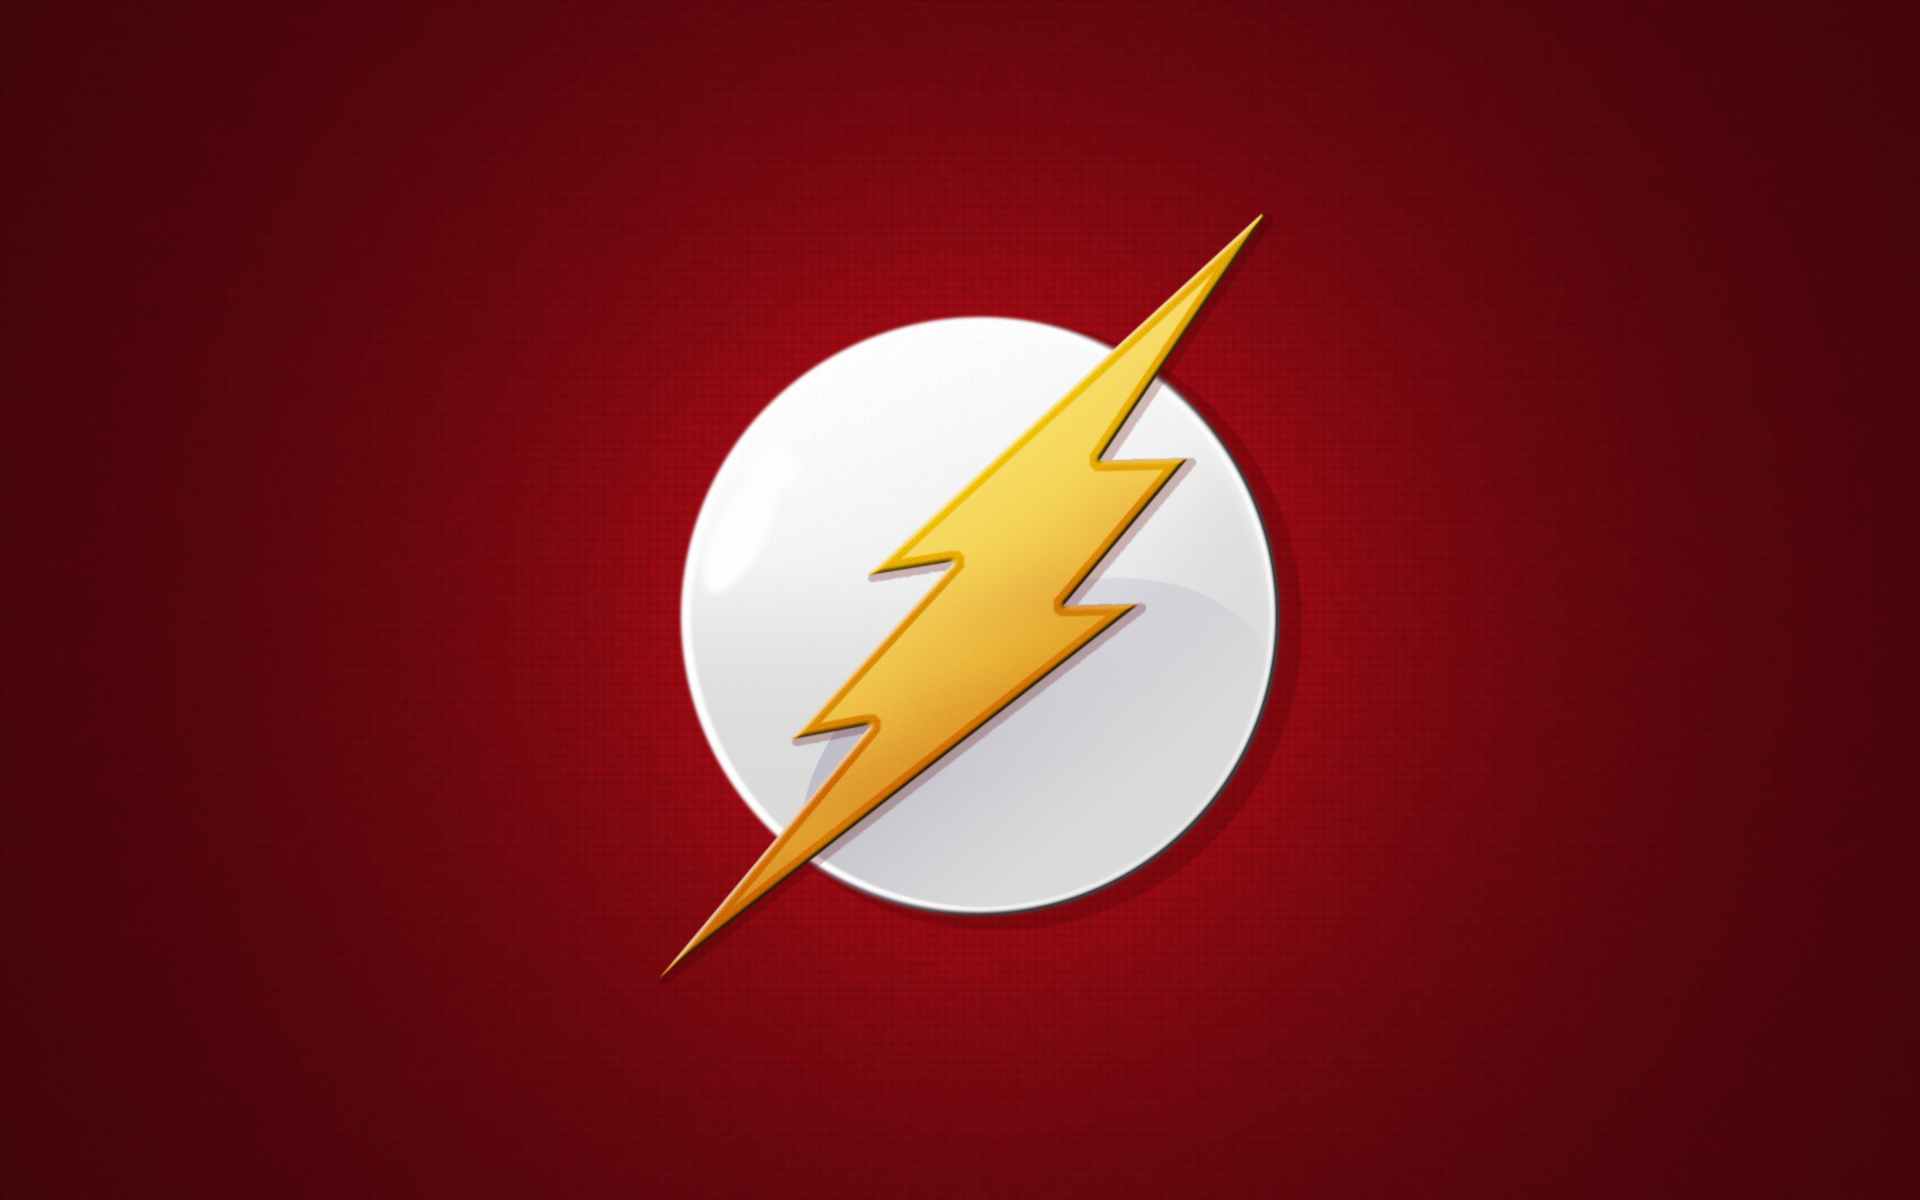 Bienvenue sur le site The Flash France